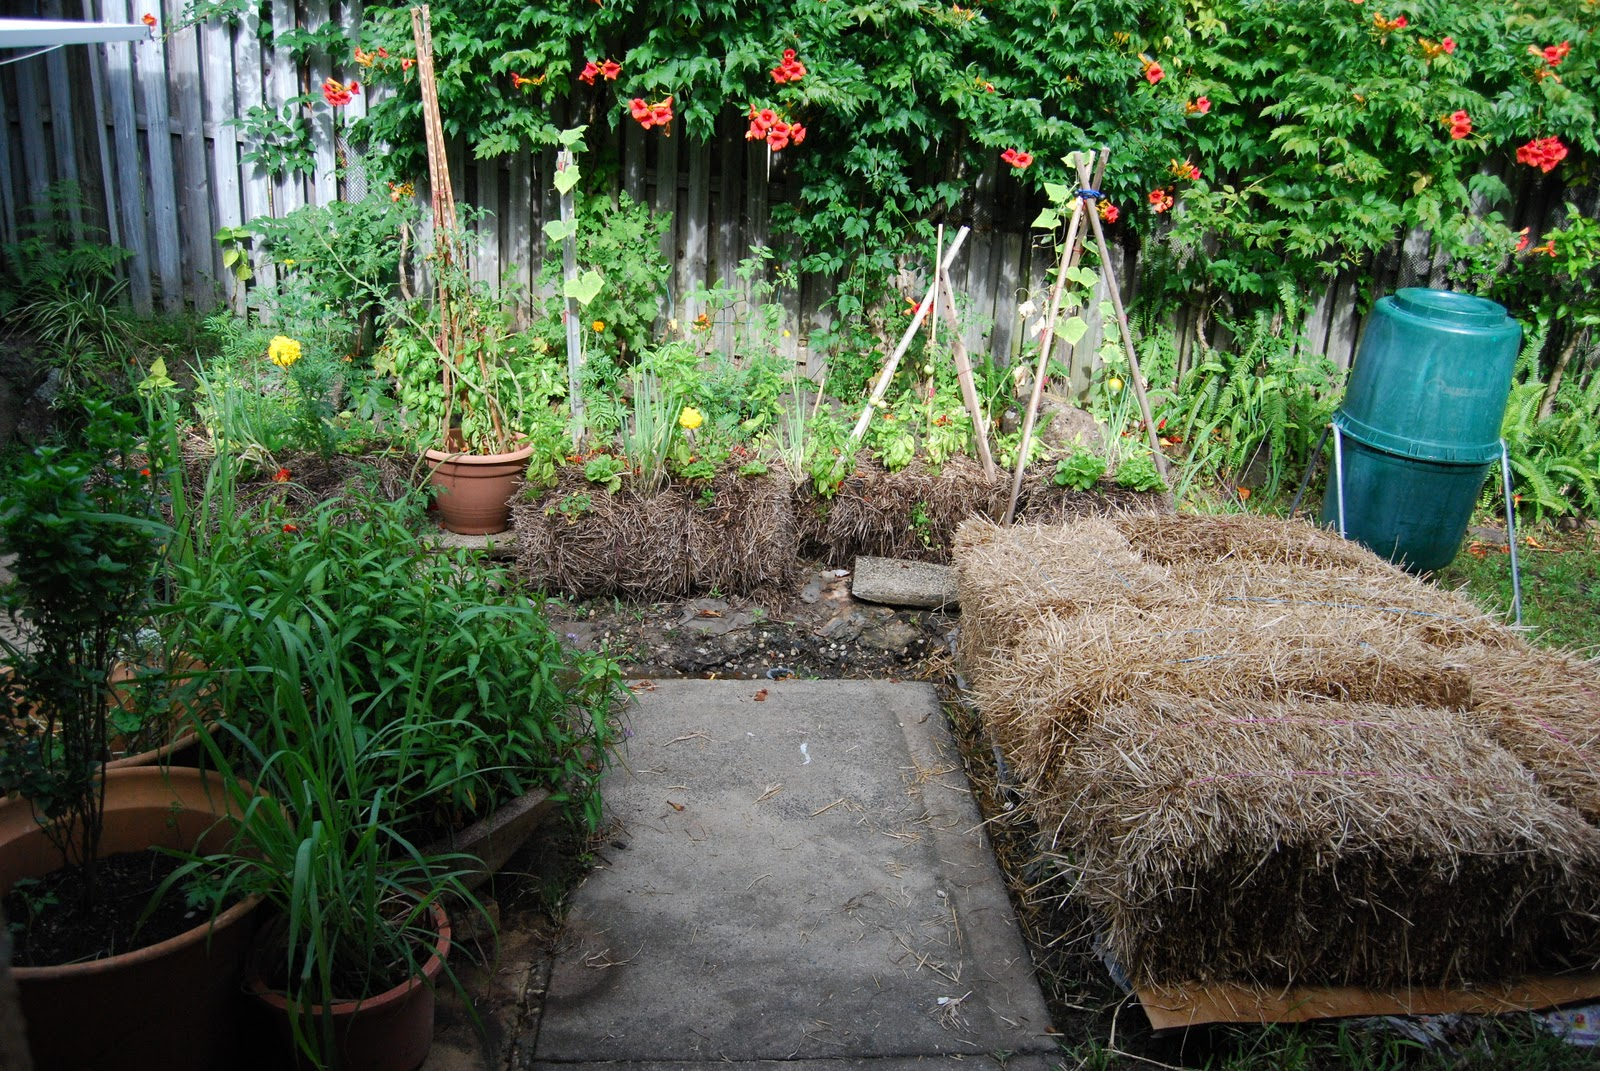 And Pictured Here Is The Start Of My Second Straw Bale Garden